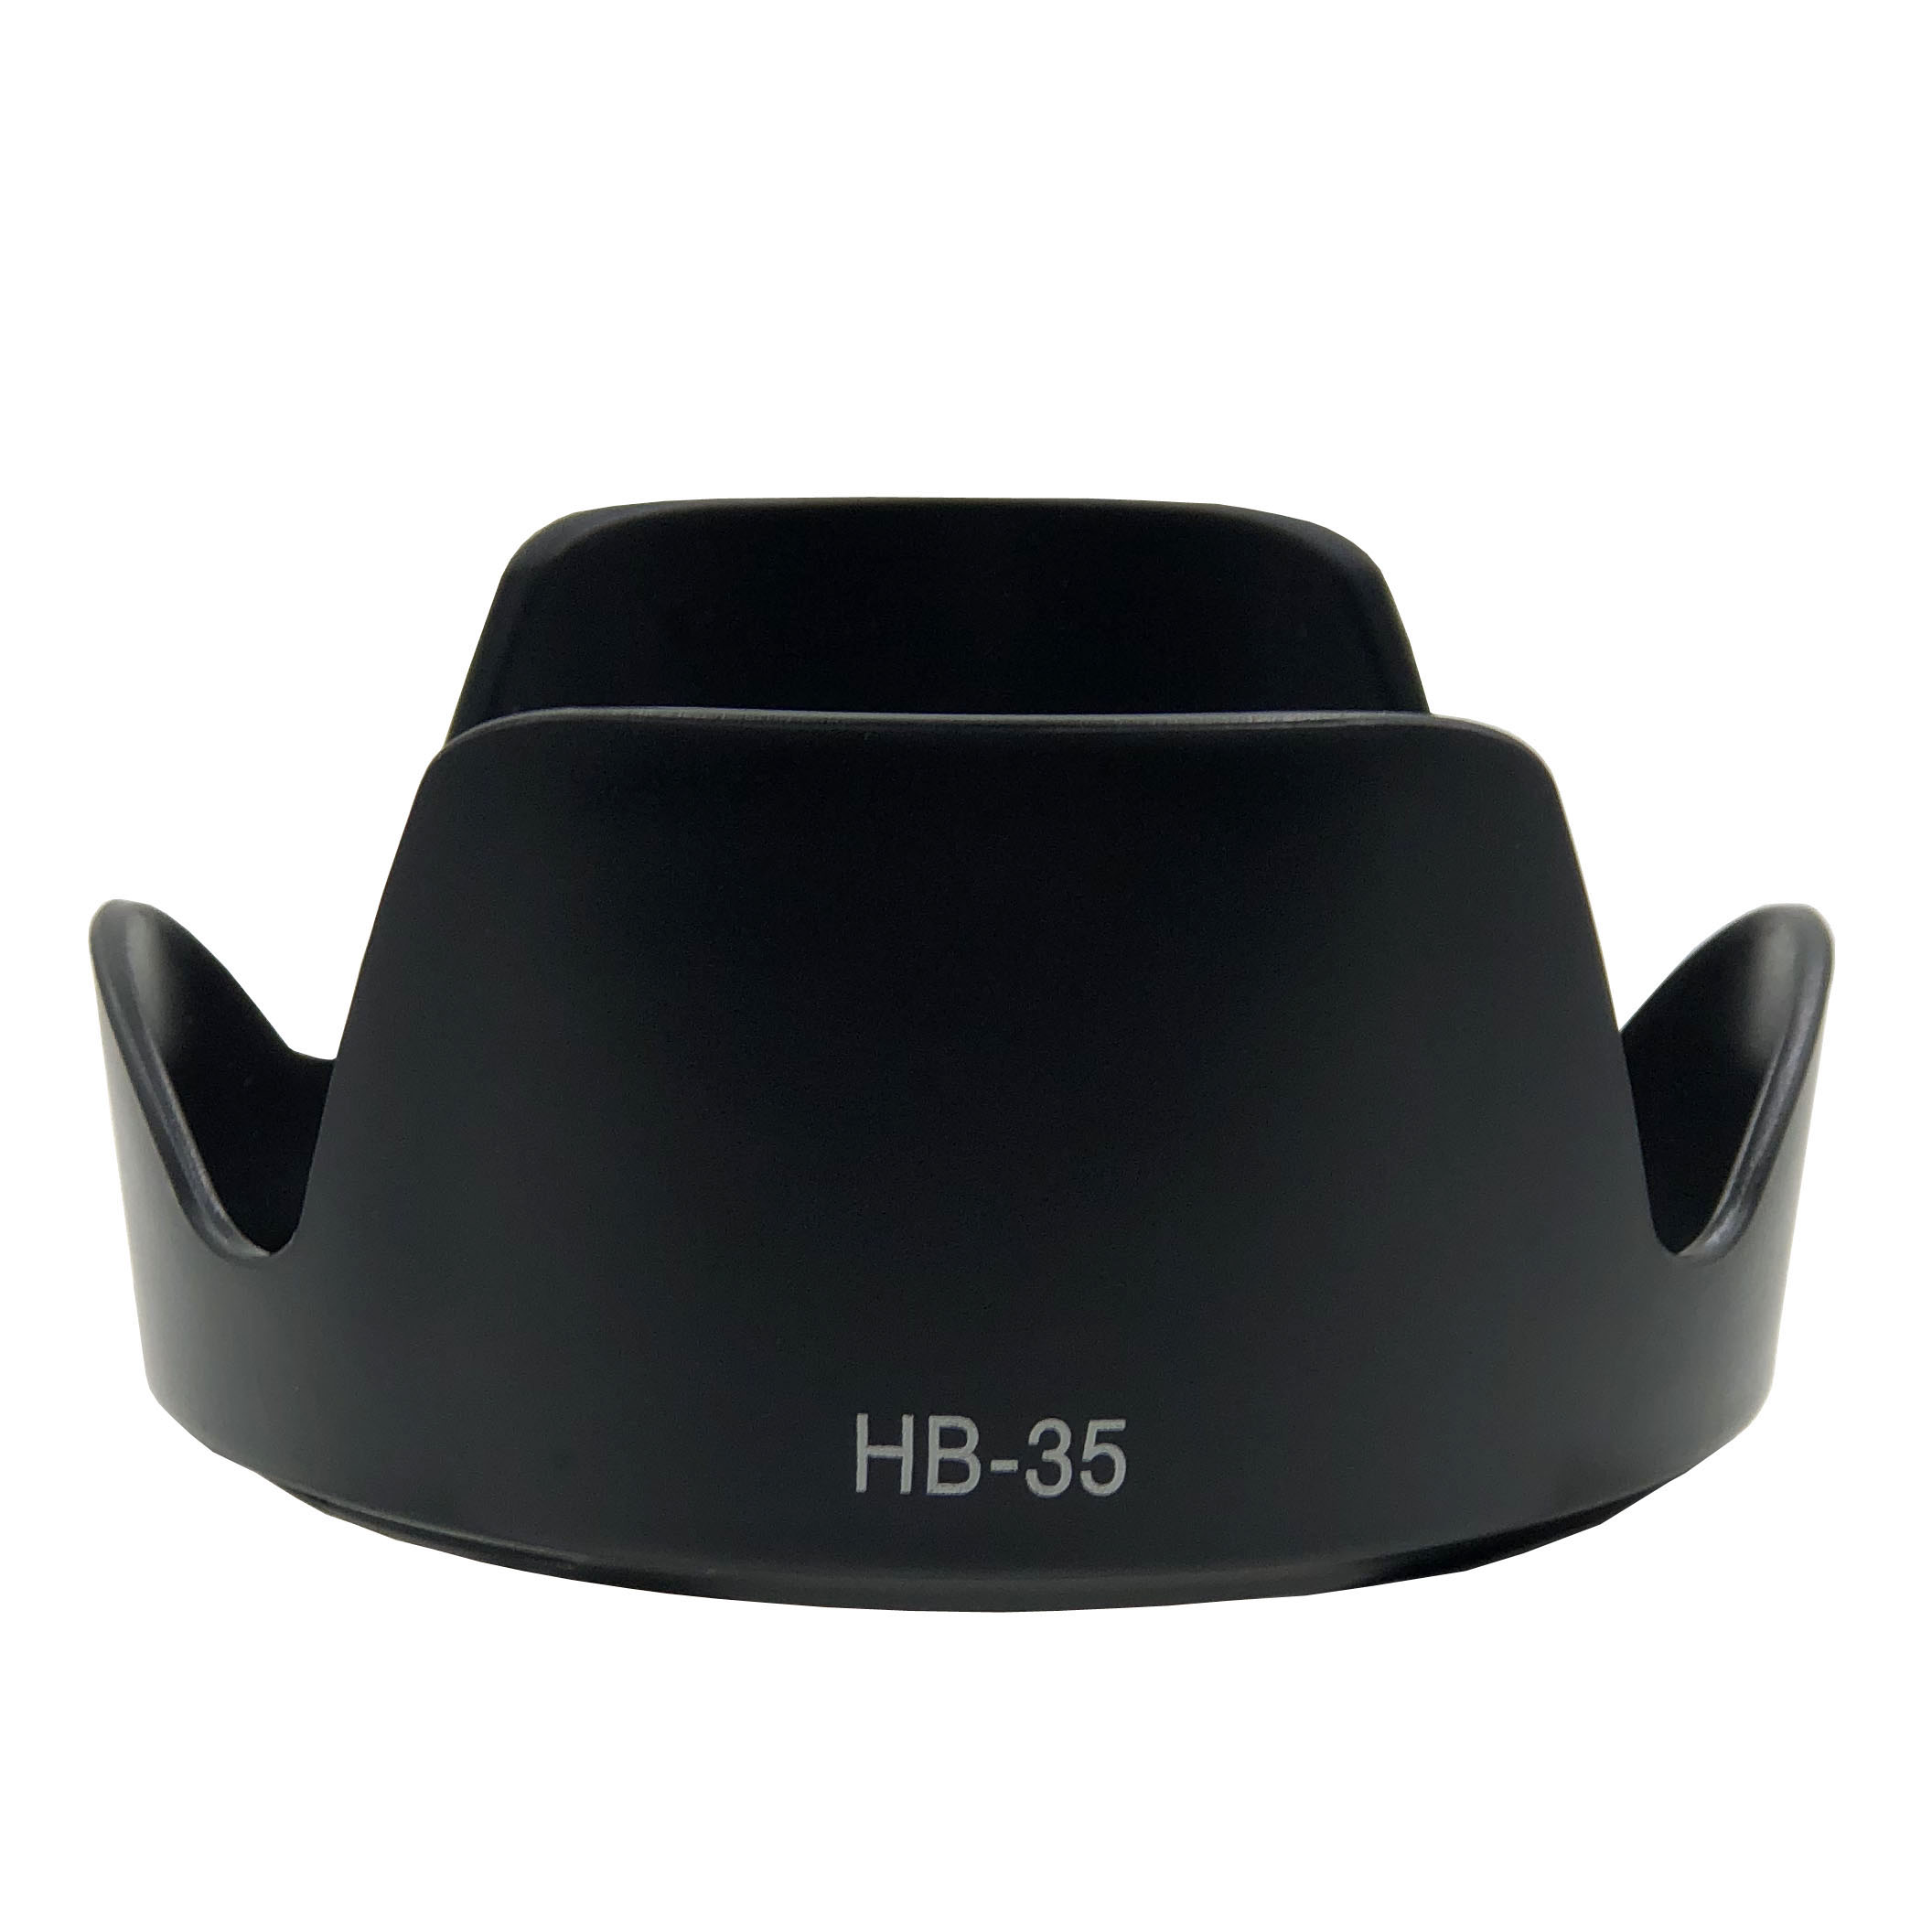 High quality bayonet Lens Hood HB-35 for Camera AF-S DX <font><b>18</b></font>-<font><b>200mm</b></font> f/3.5-5.6G IF-ED Y451 image